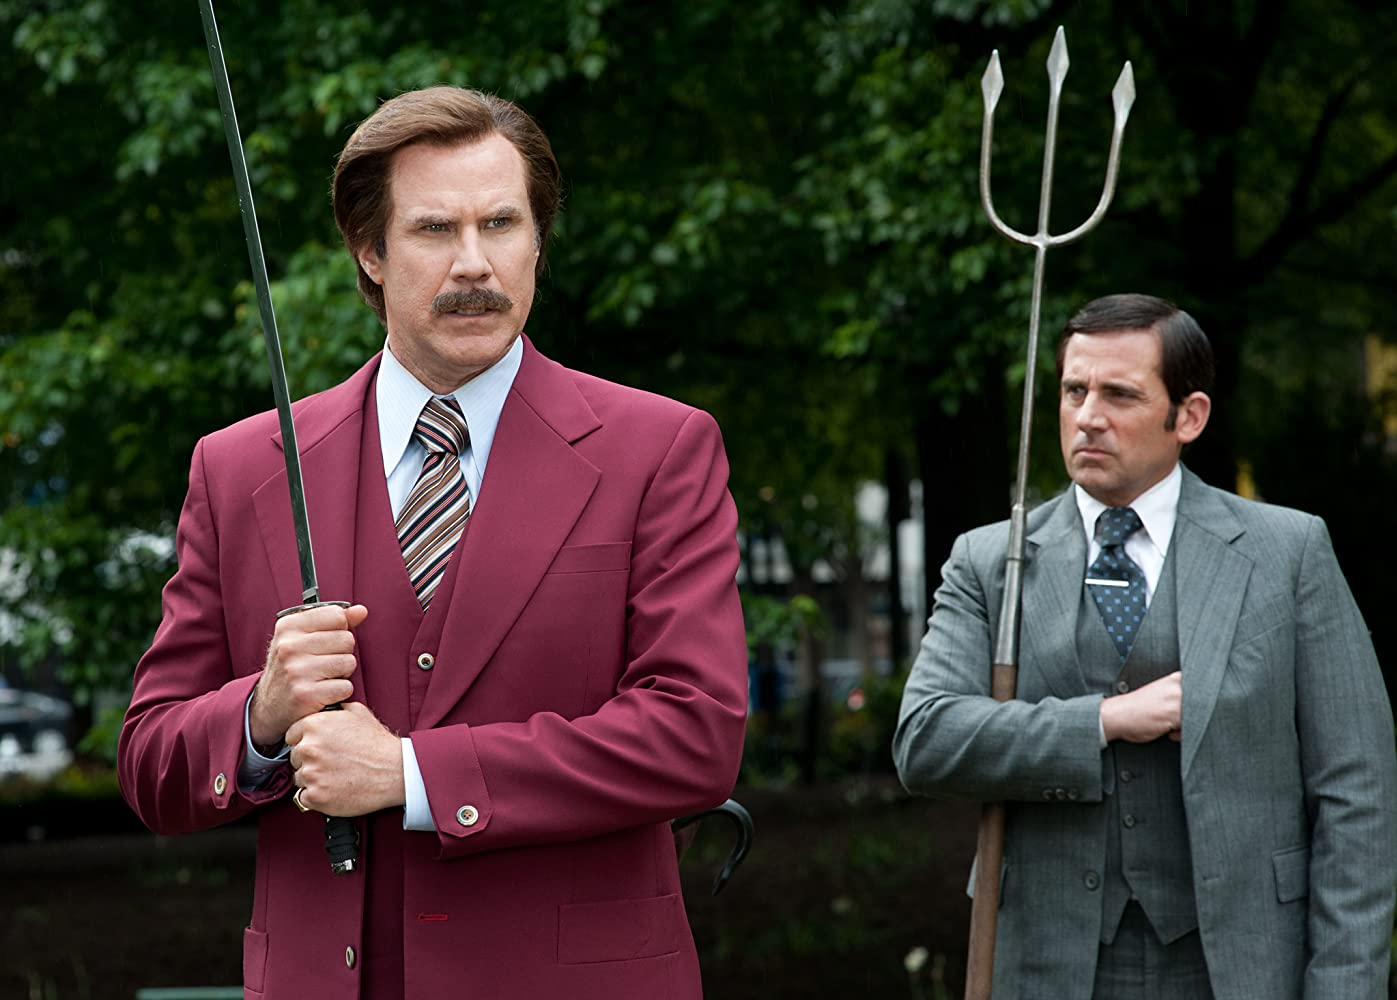 Will Ferrell and Steve Carell in Anchorman 2: The Legend Continues (2013)